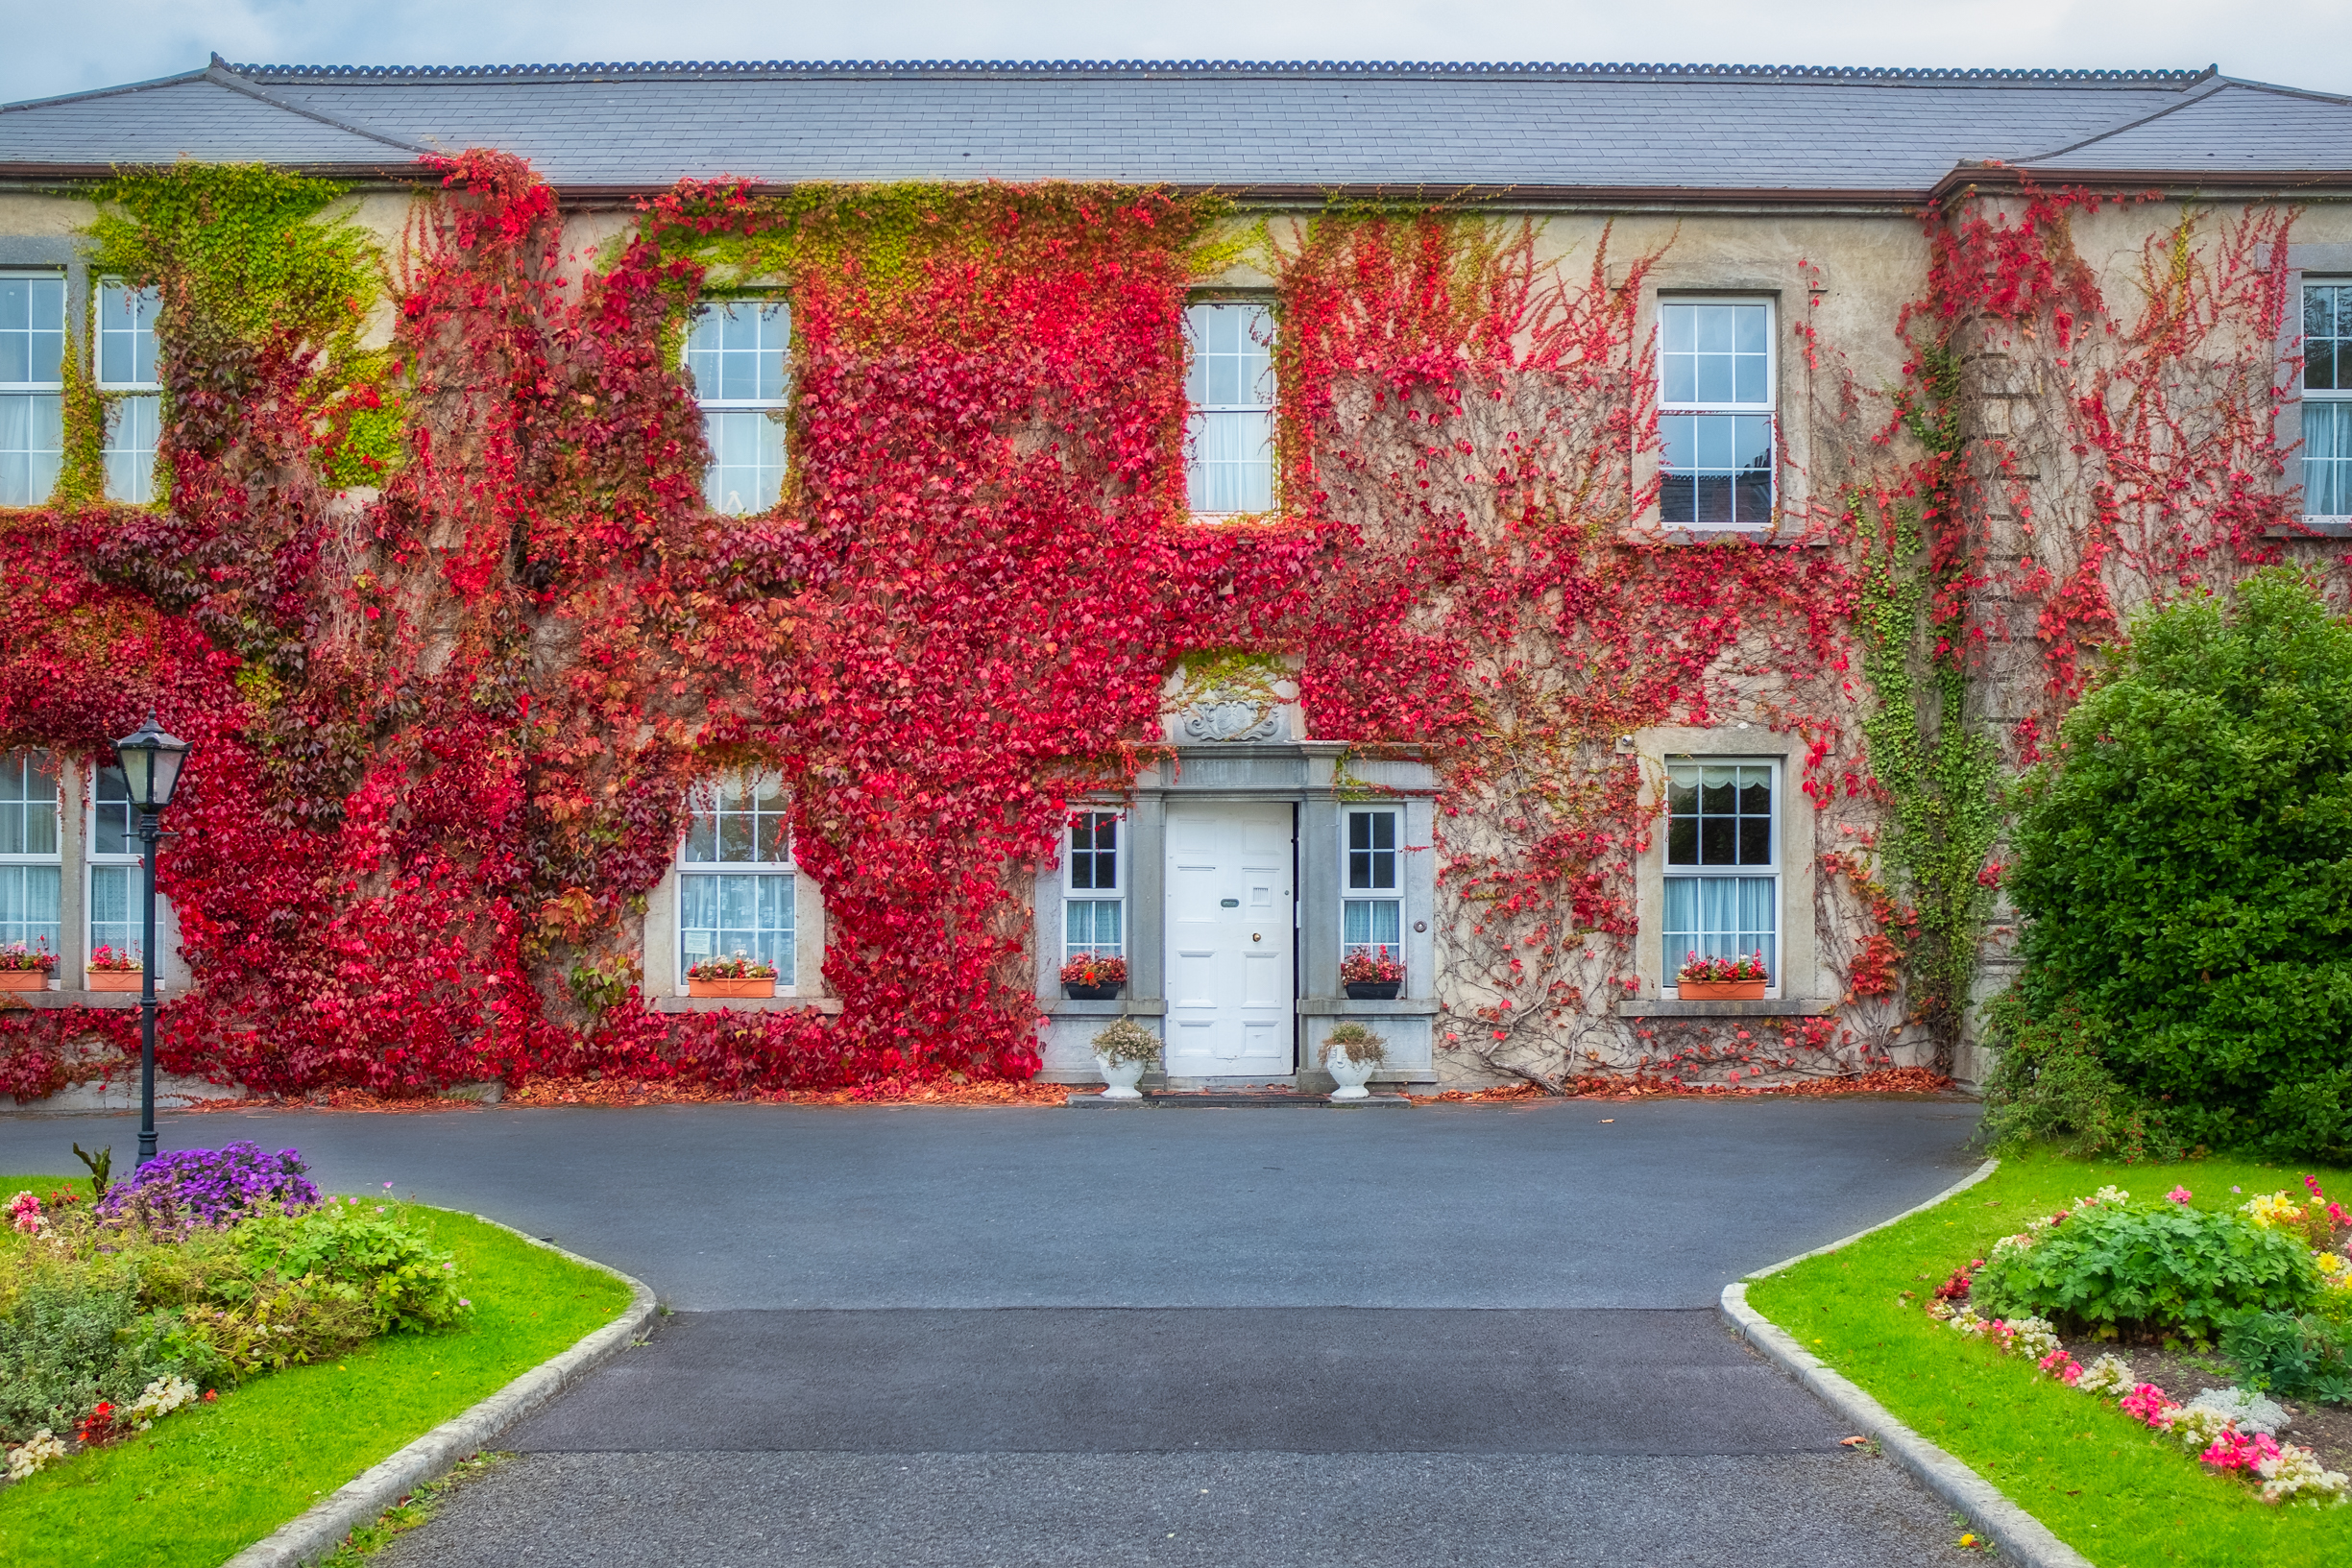 Boston Ivy on building